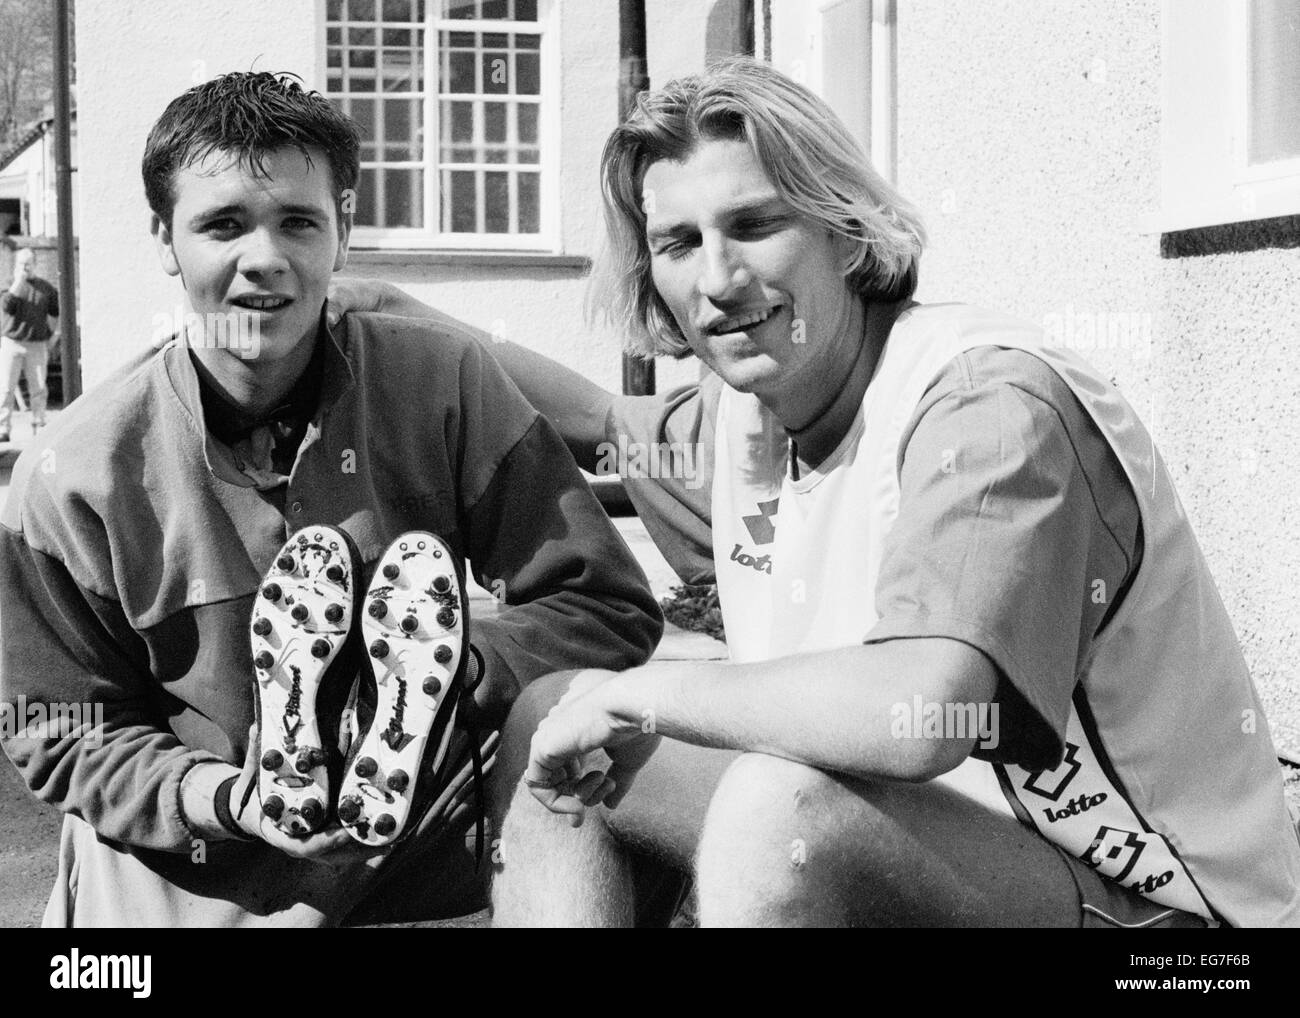 Wales International Robbie Savage (r) at the Welsh training camp 1995 - Stock Image